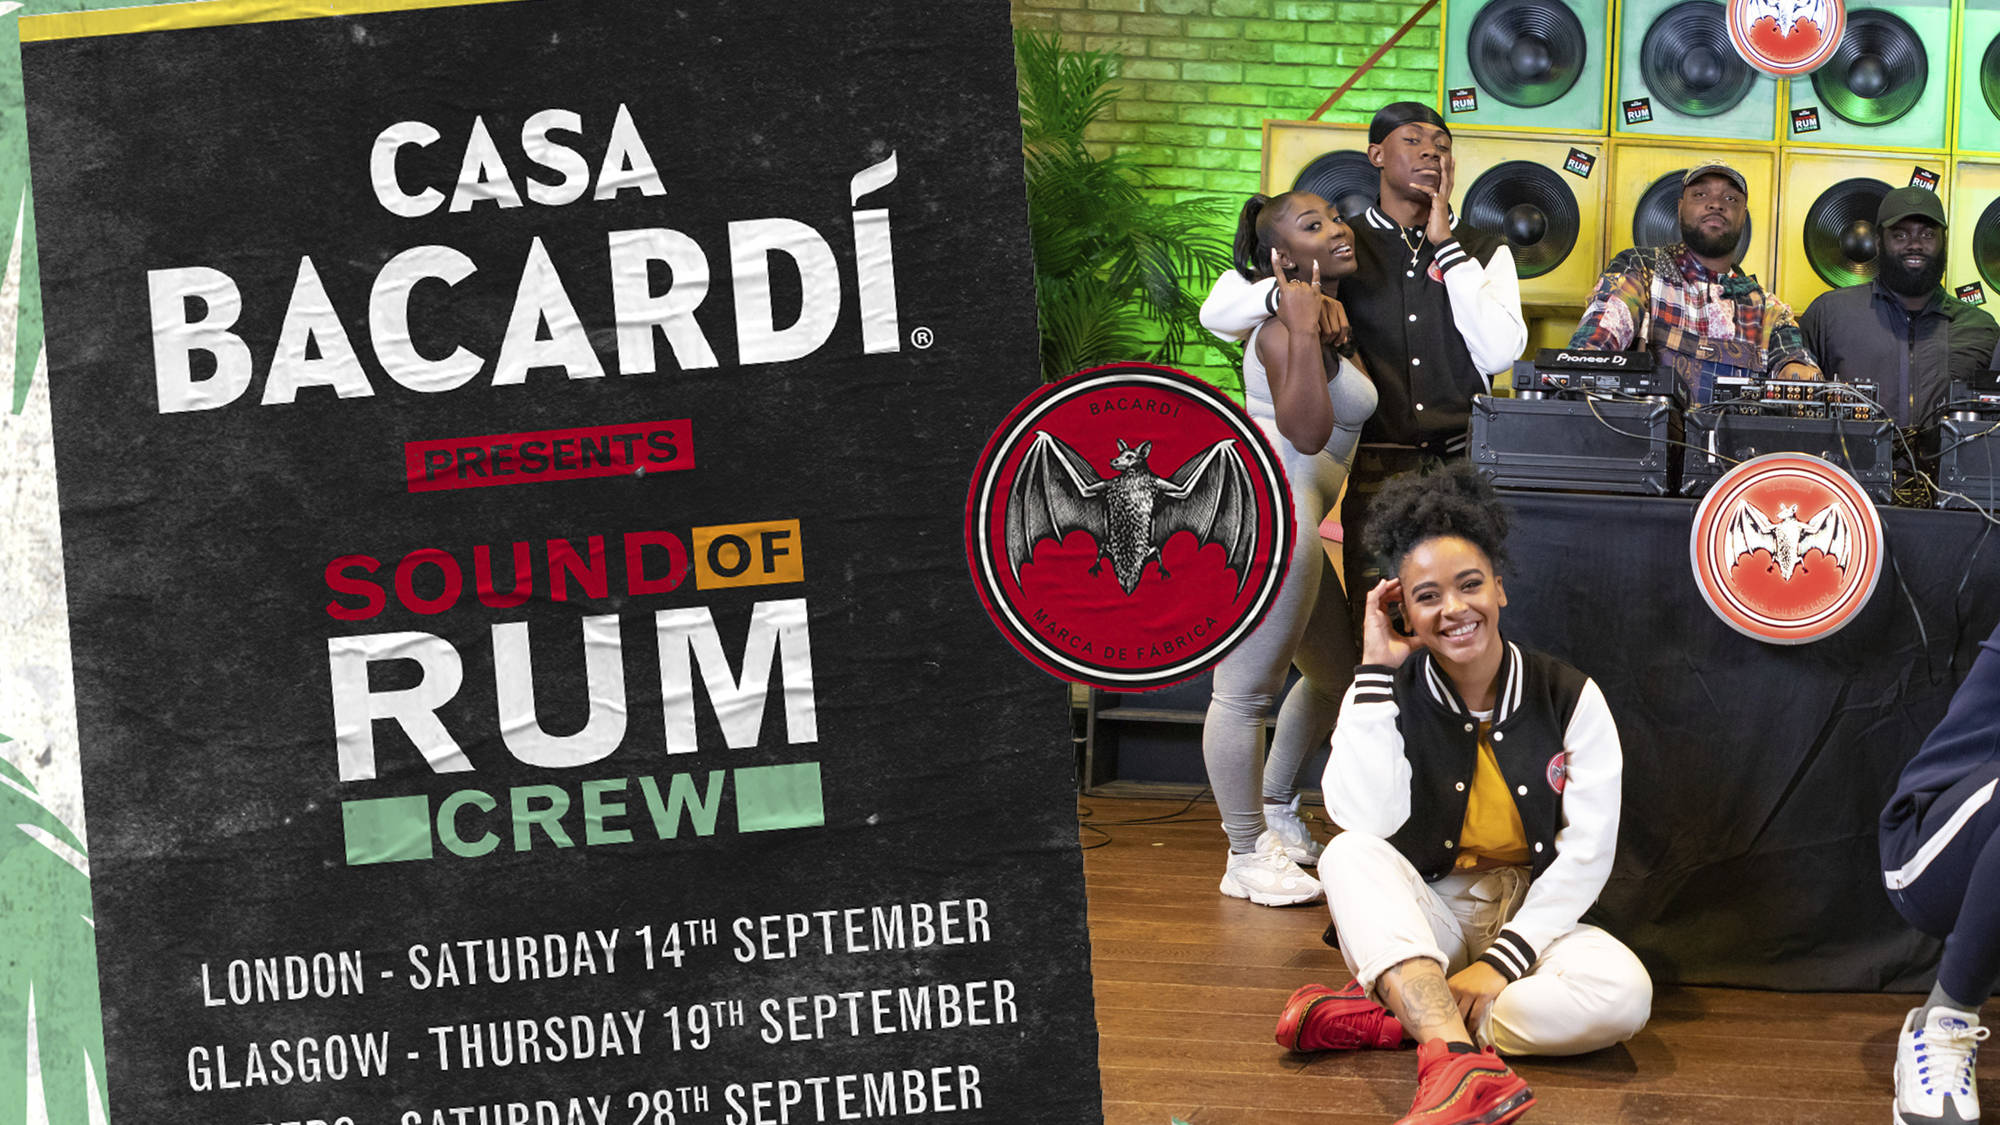 CASA BACARDÍ Presents Sound Of Rum Crew: Dates, Tickets, Lineup & More